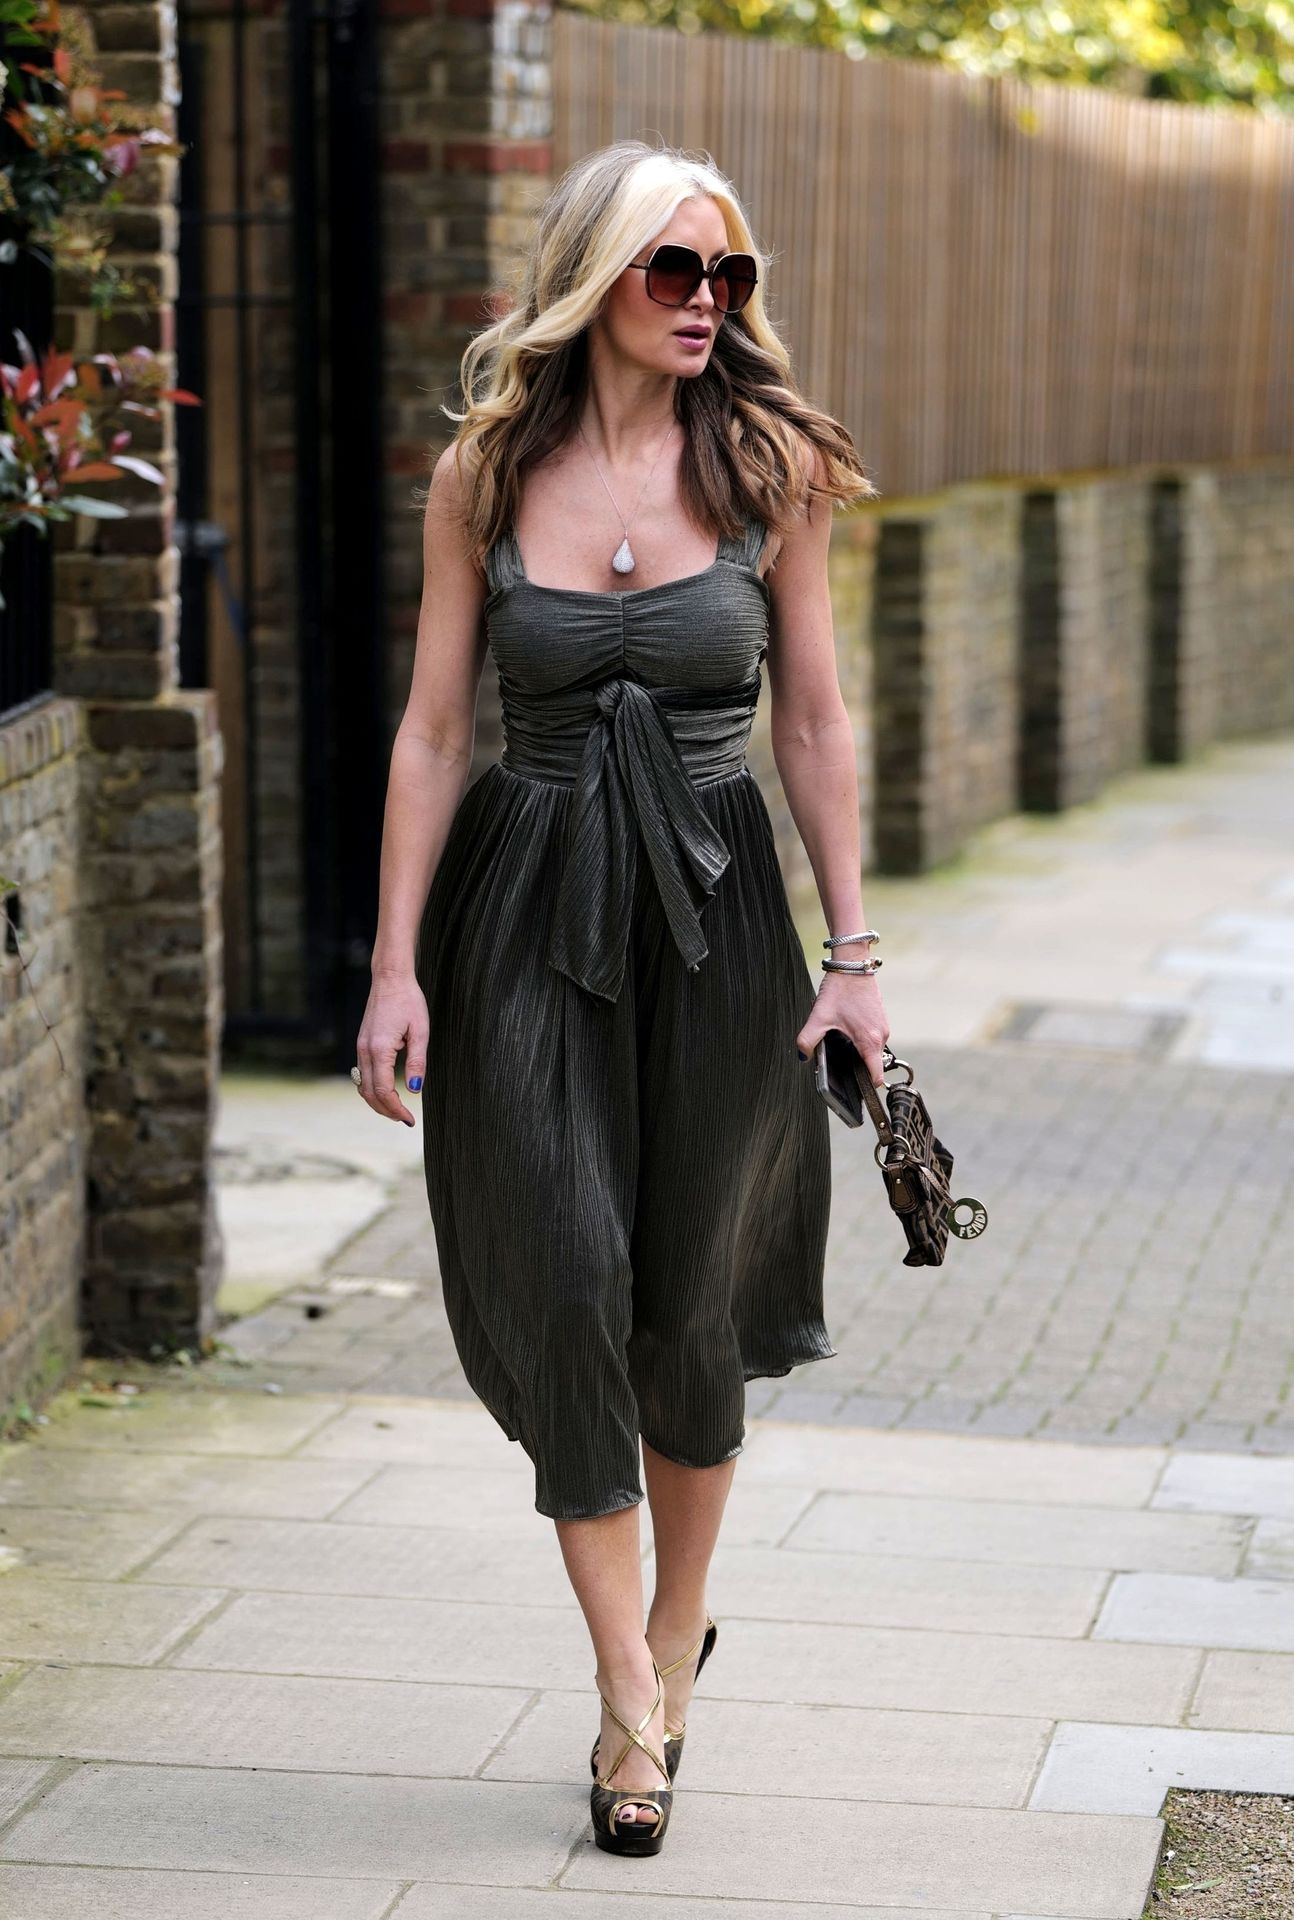 Caprice Bourret Steps Out Looking Glamorous In London 0028